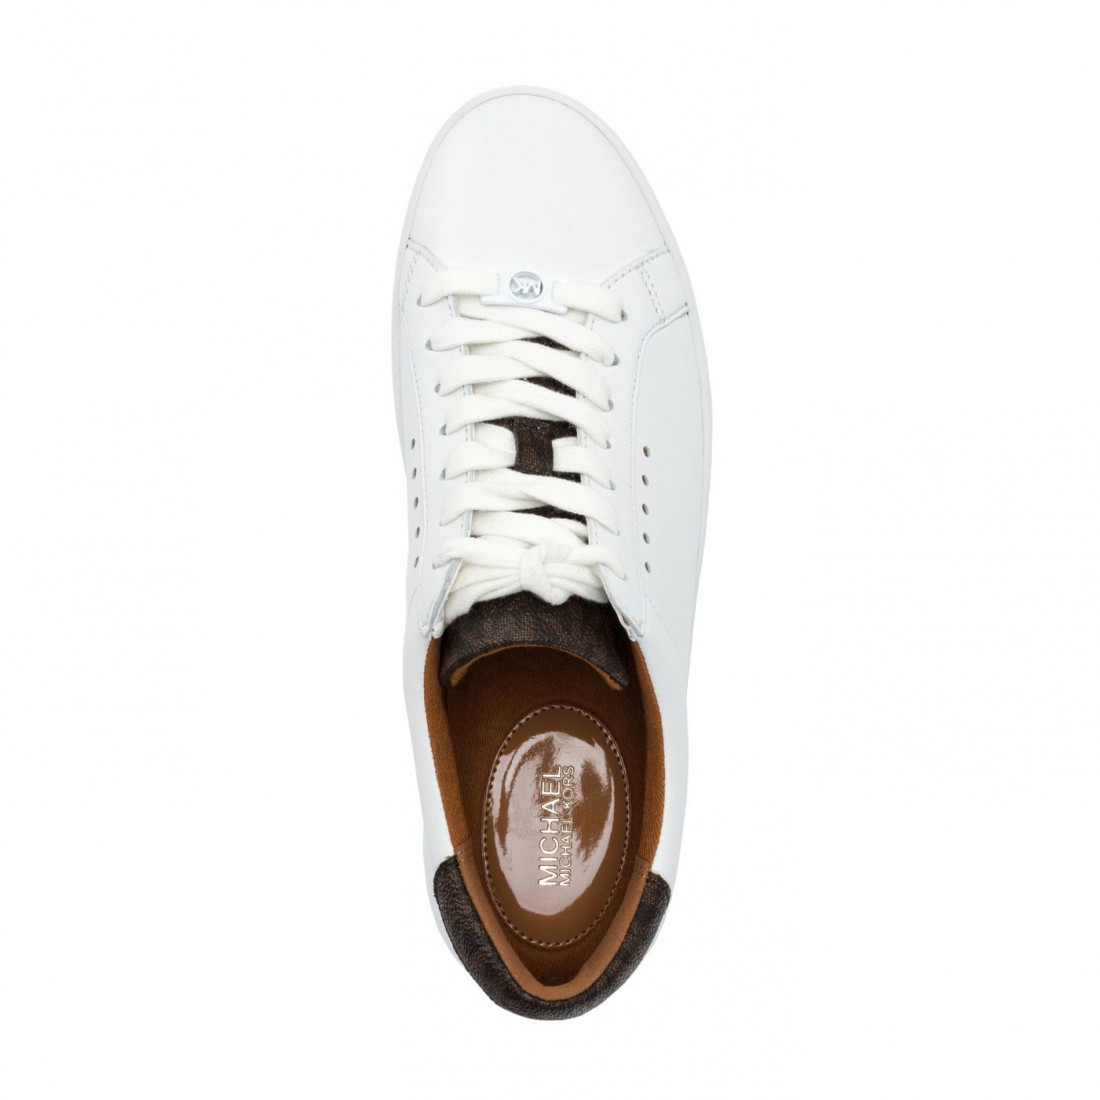 sneakers woman michael kors 43s7irfs3l272 7354